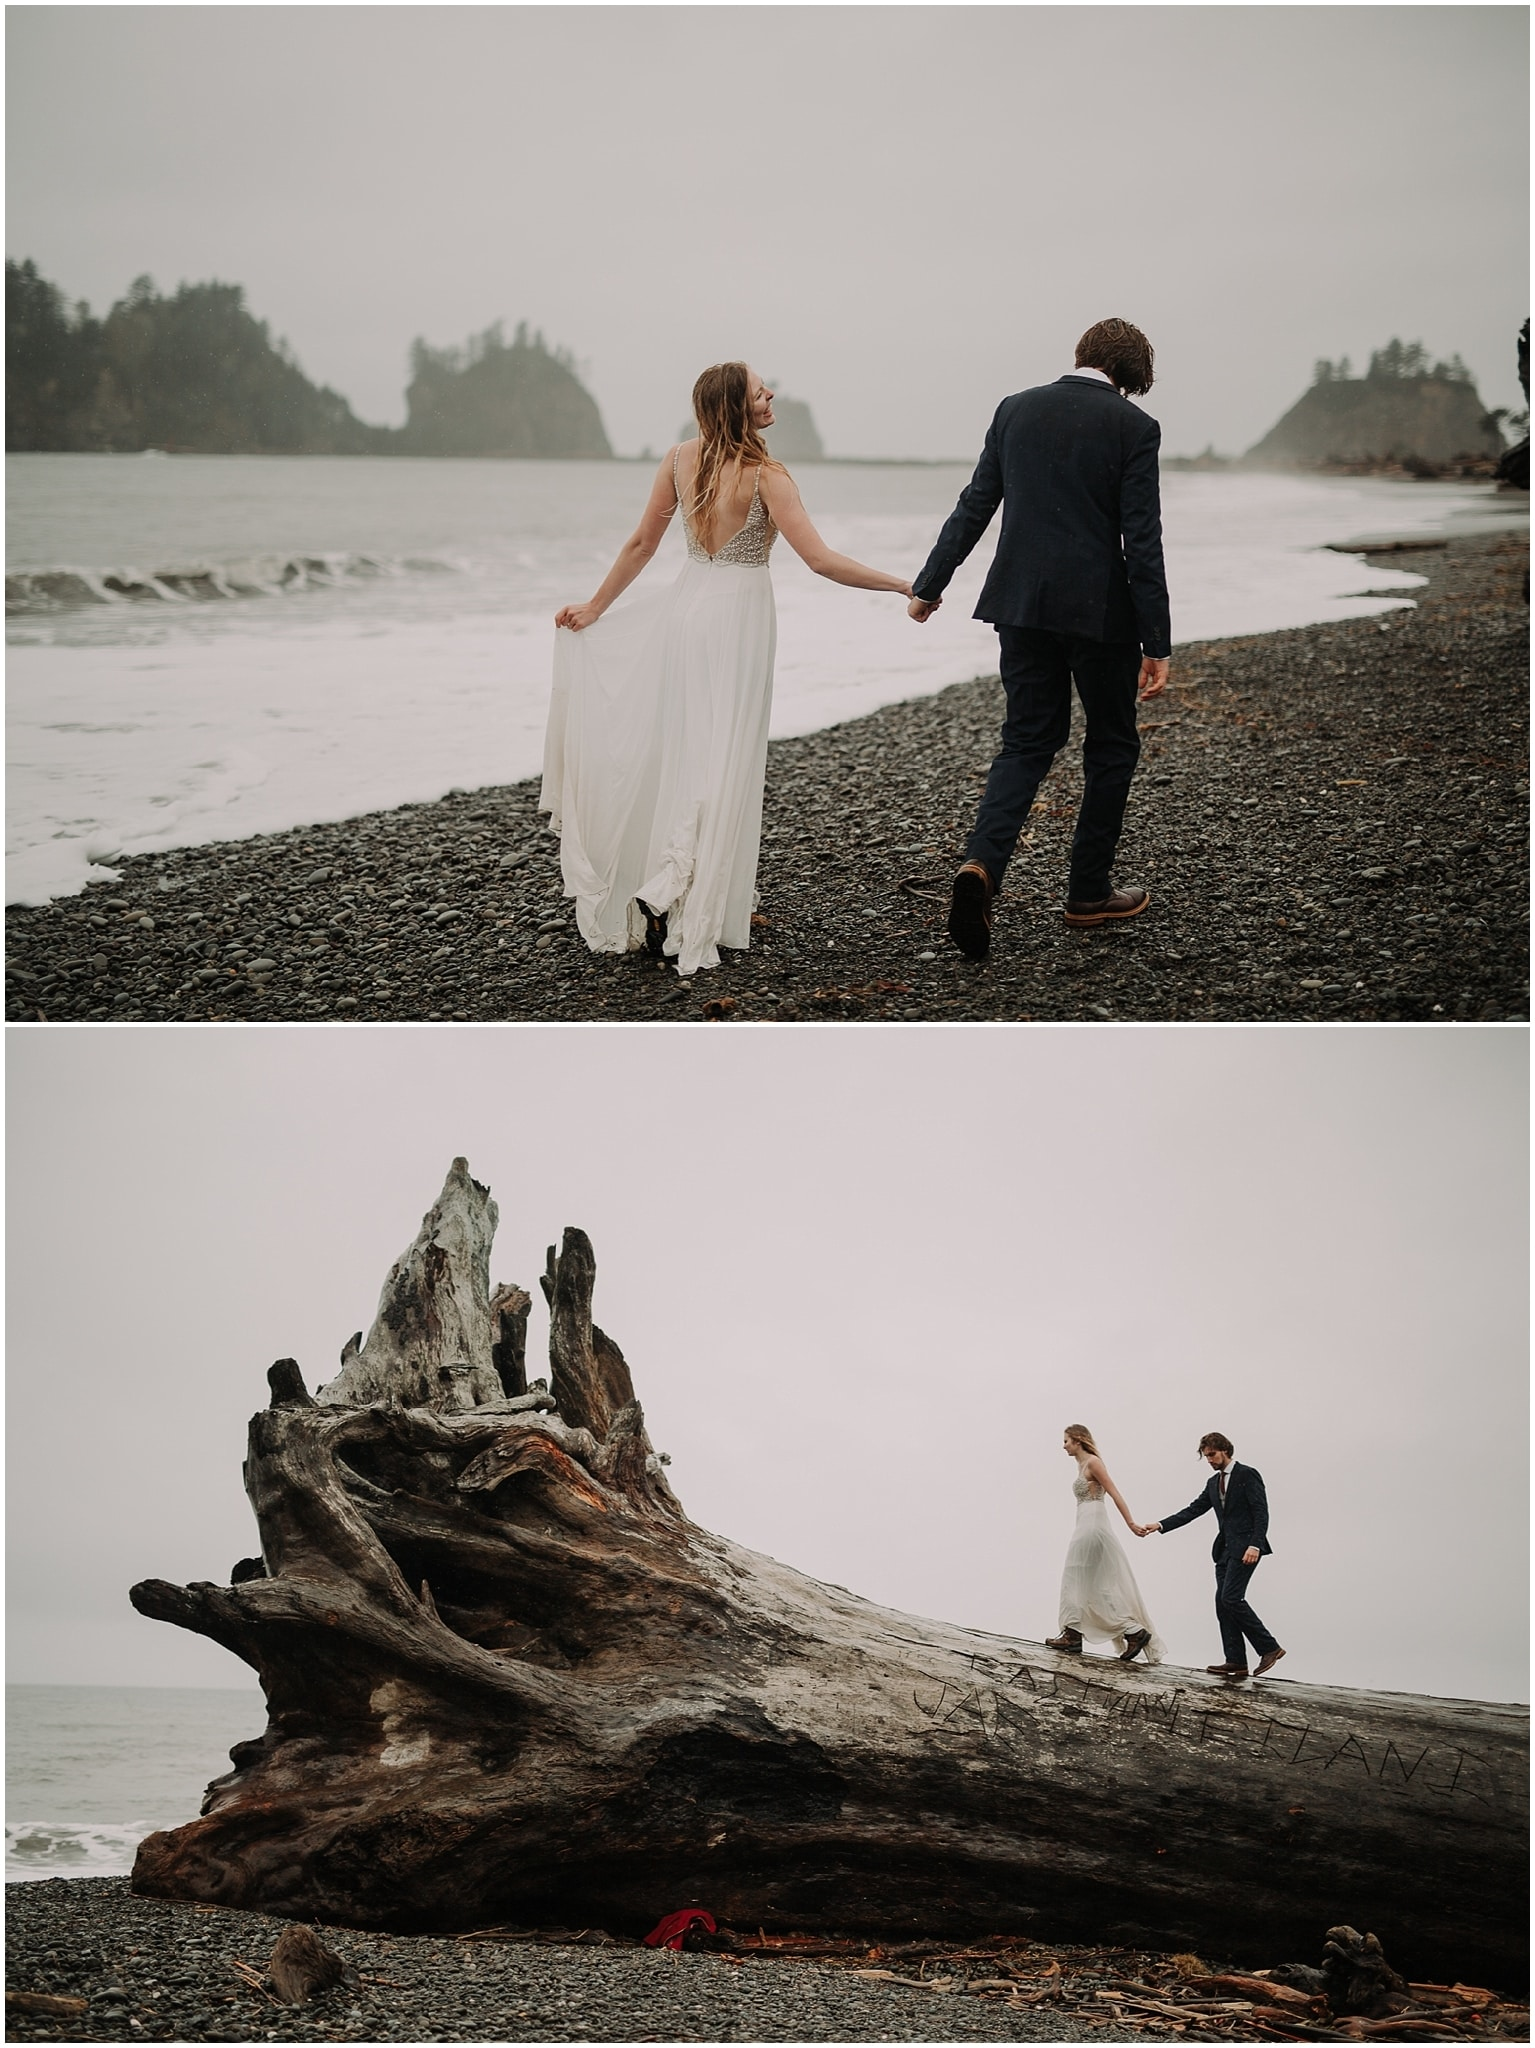 Olympic National Forest Engagement Photos, Olympic National Park Engagement Photos, Washington Engagement Photographer, La Push Beach engagement photos, Washington elopement photographer, Best elopement photographers in Washington, Best Washington engagement photographers, First Beach LaPush, beach Engagement photos, adventurous Engagement session, Rainy day elopement, Olympic National Park La Push, adventure elopement photographer, la push beach Washington, second beach la push, second beach la push elopement, la push elopement photographer, la push elopement photography